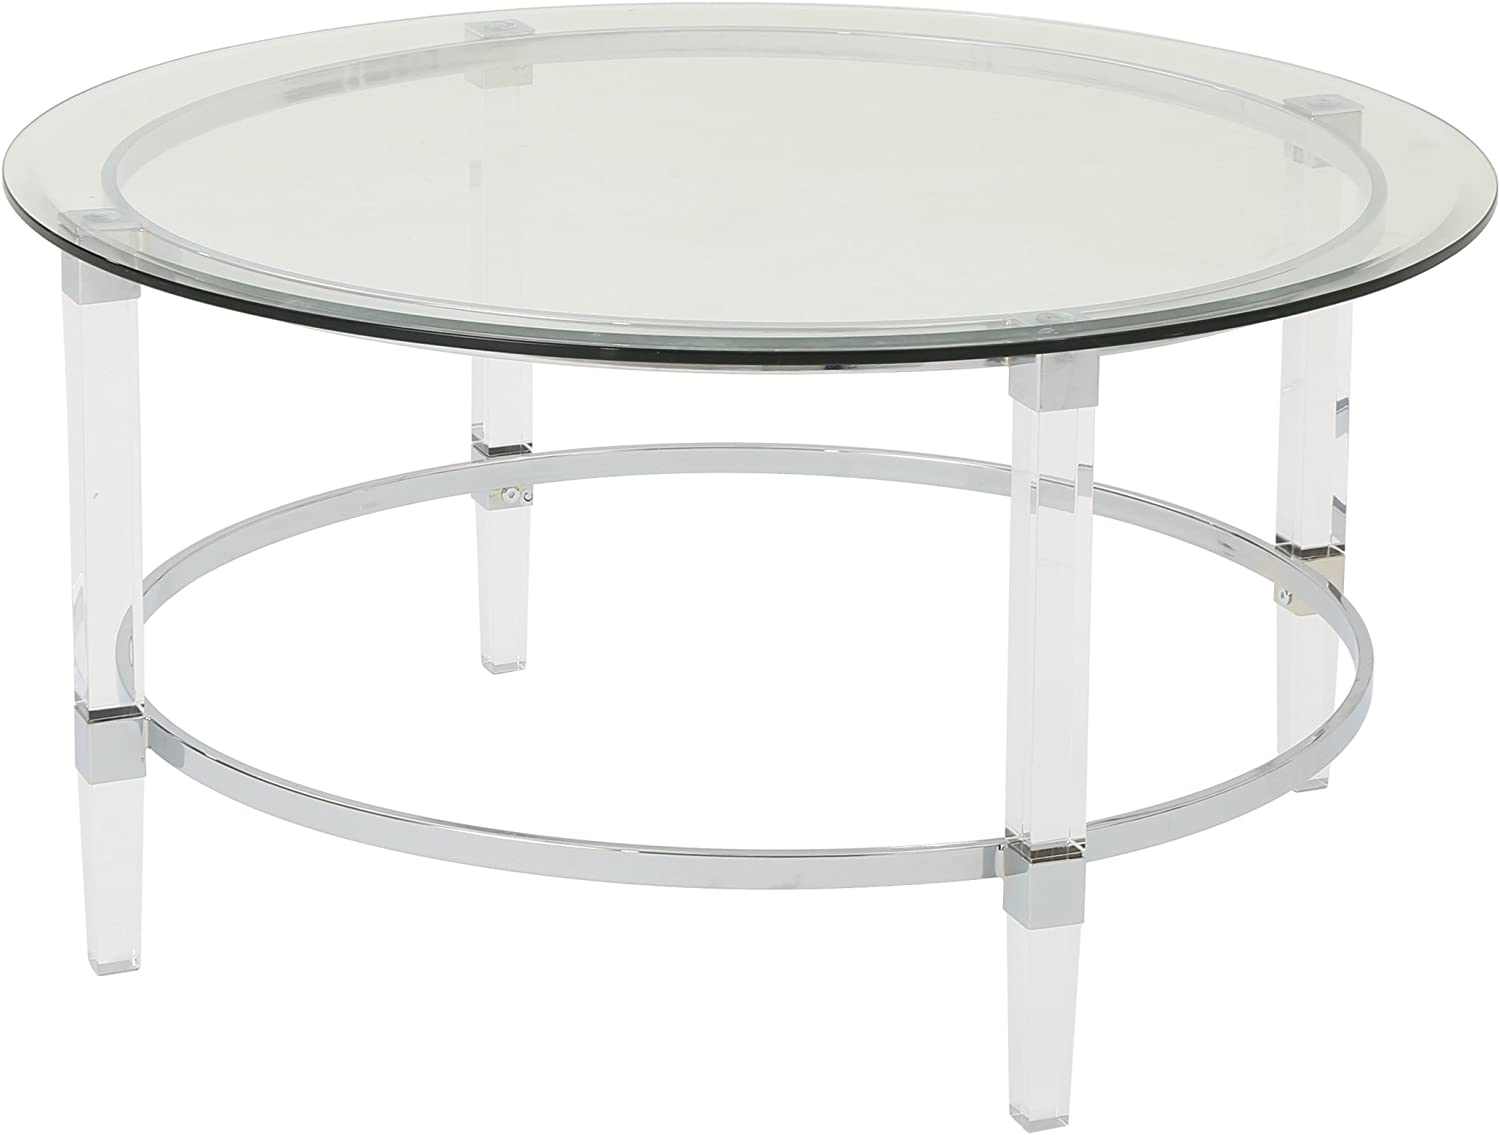 - Amazon.com: Christopher Knight Home Elowen Modern Round Tempered